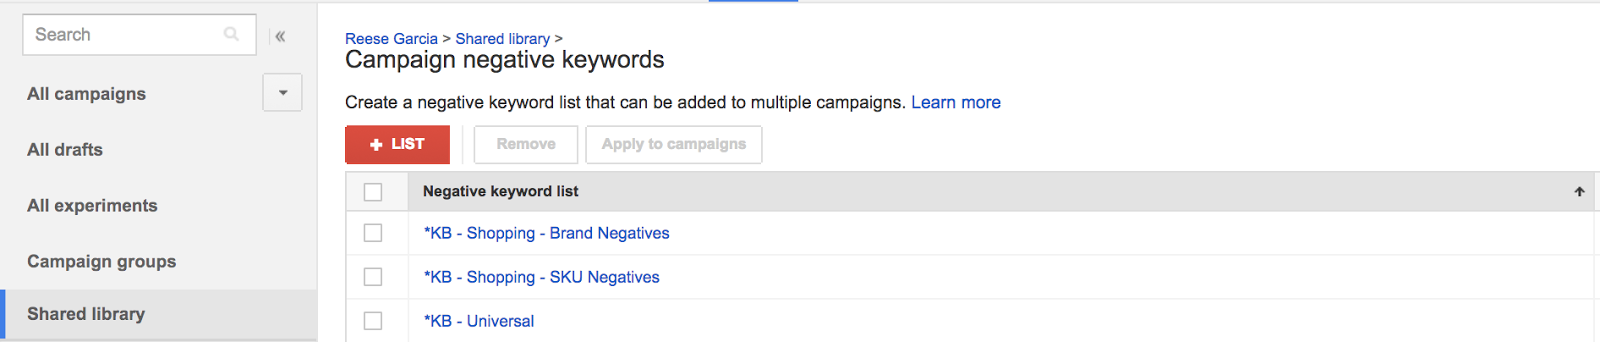 I like the negative keyword list names to match their campaign counterparts for consistency.